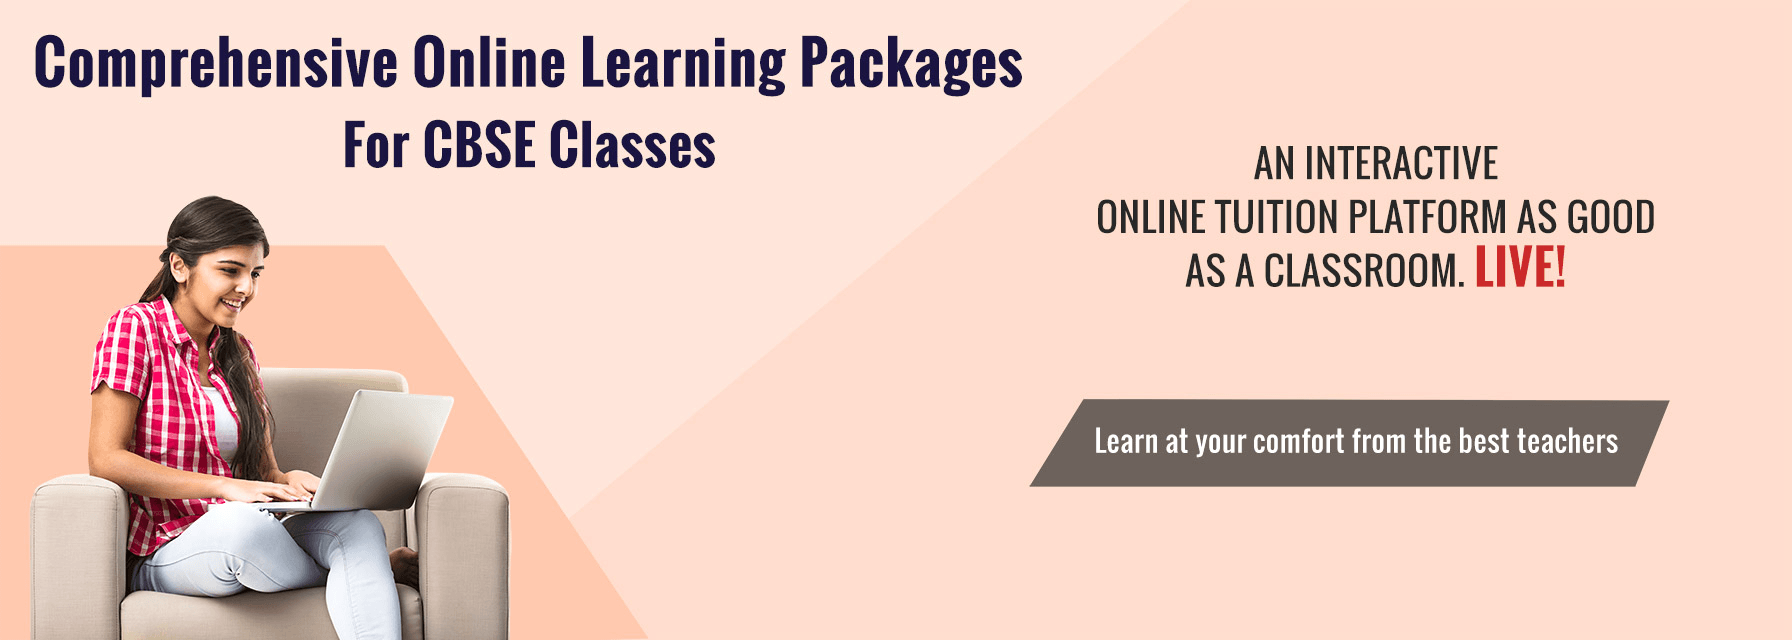 Explore Colleges Courses | Practice Tests | Ask Expert Opinions